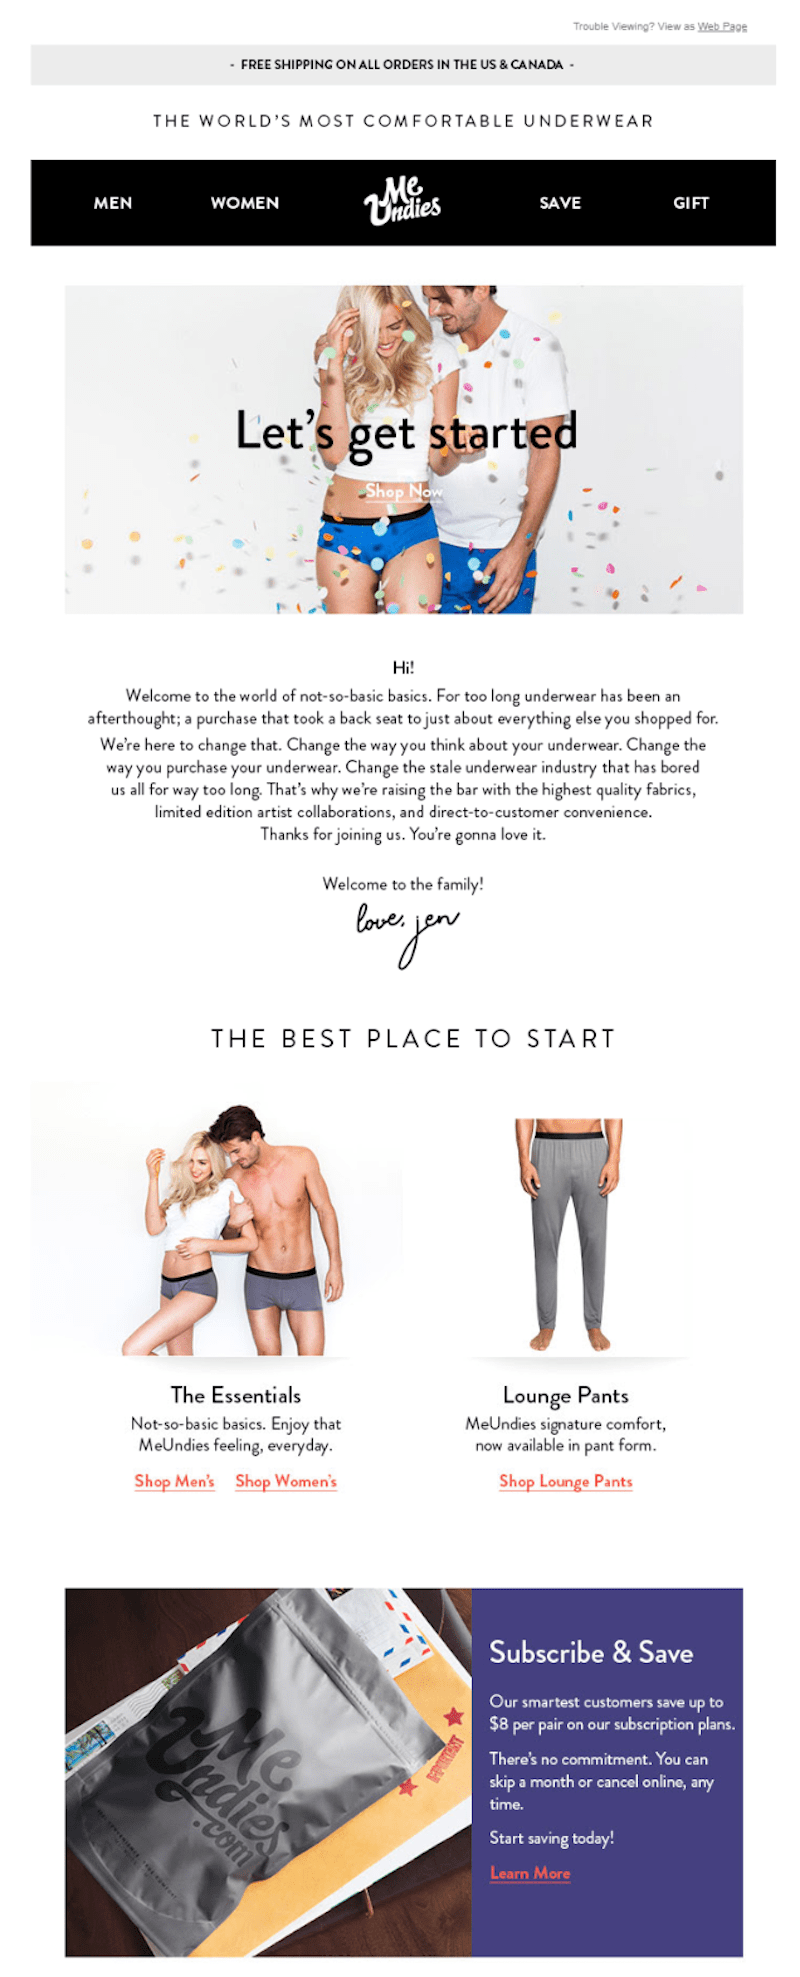 email marketing subscription business: meundies